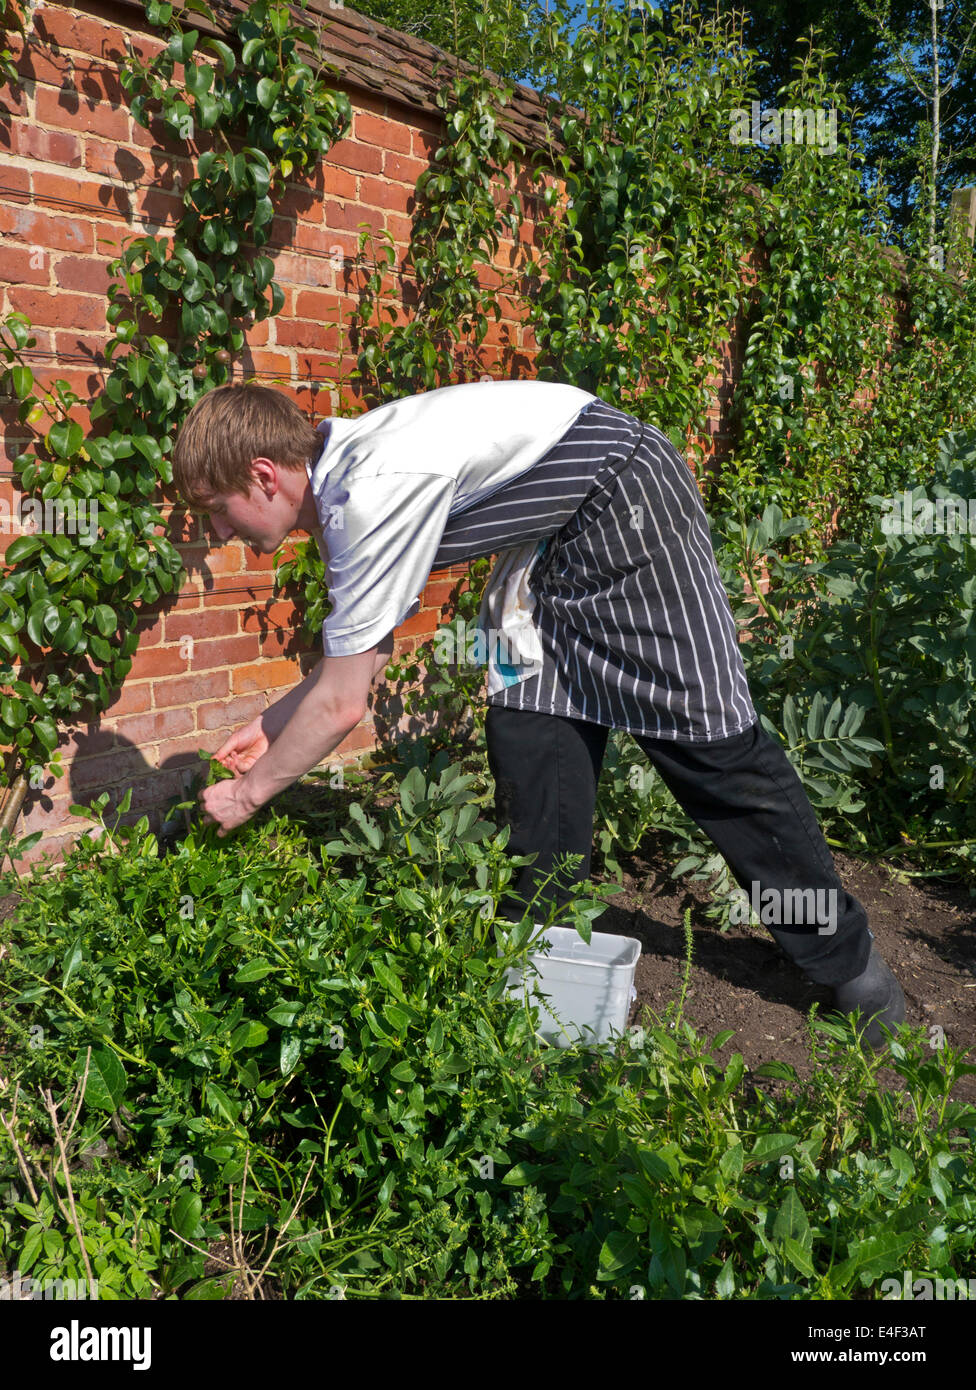 Young  commis chef picking fresh herbs in the kitchen garden ready for the restaurant evening service - Stock Image